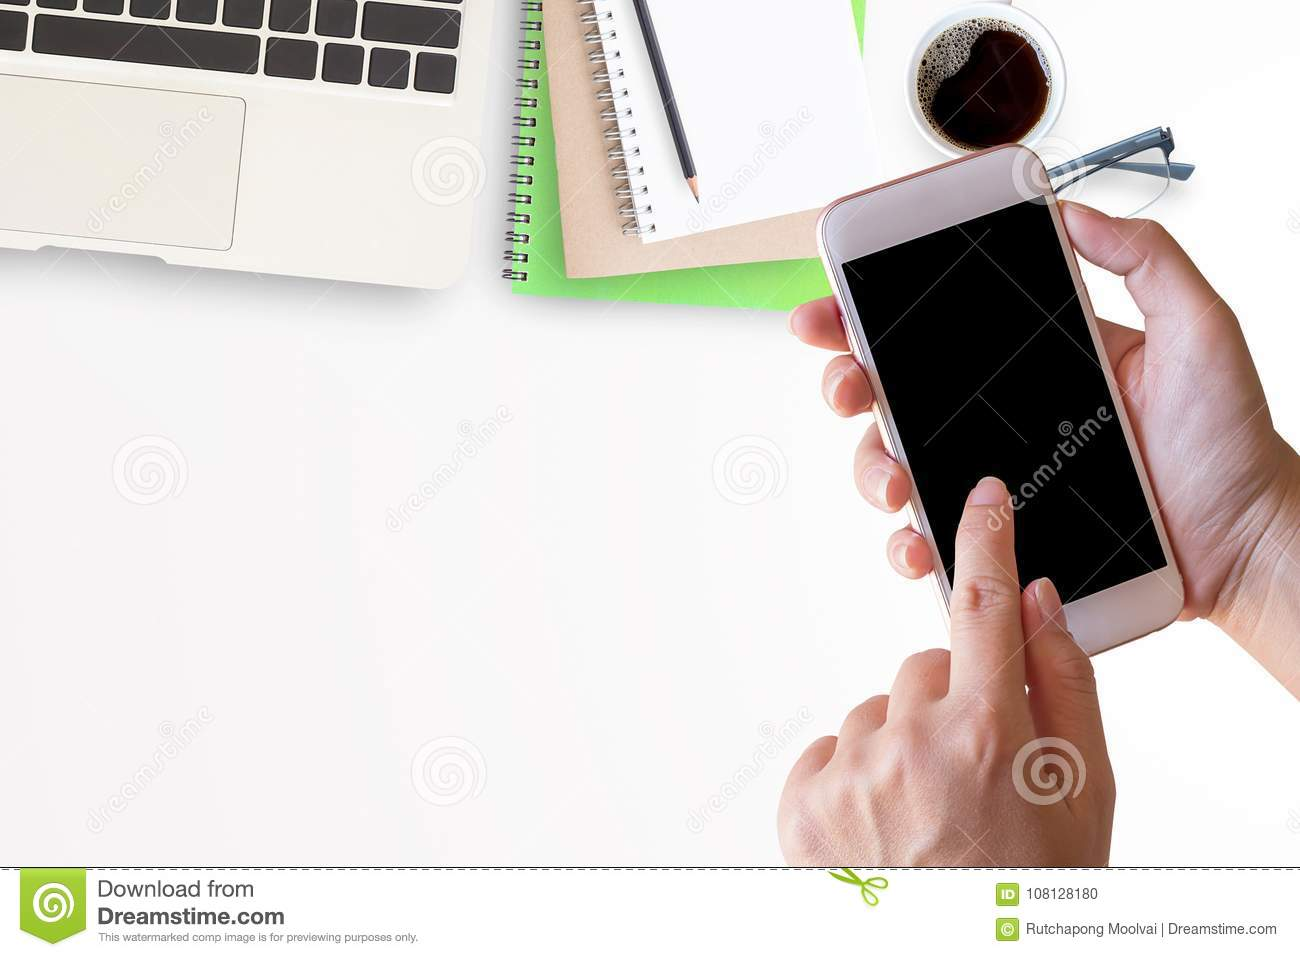 Smart phone in female hand with office desk with laptop